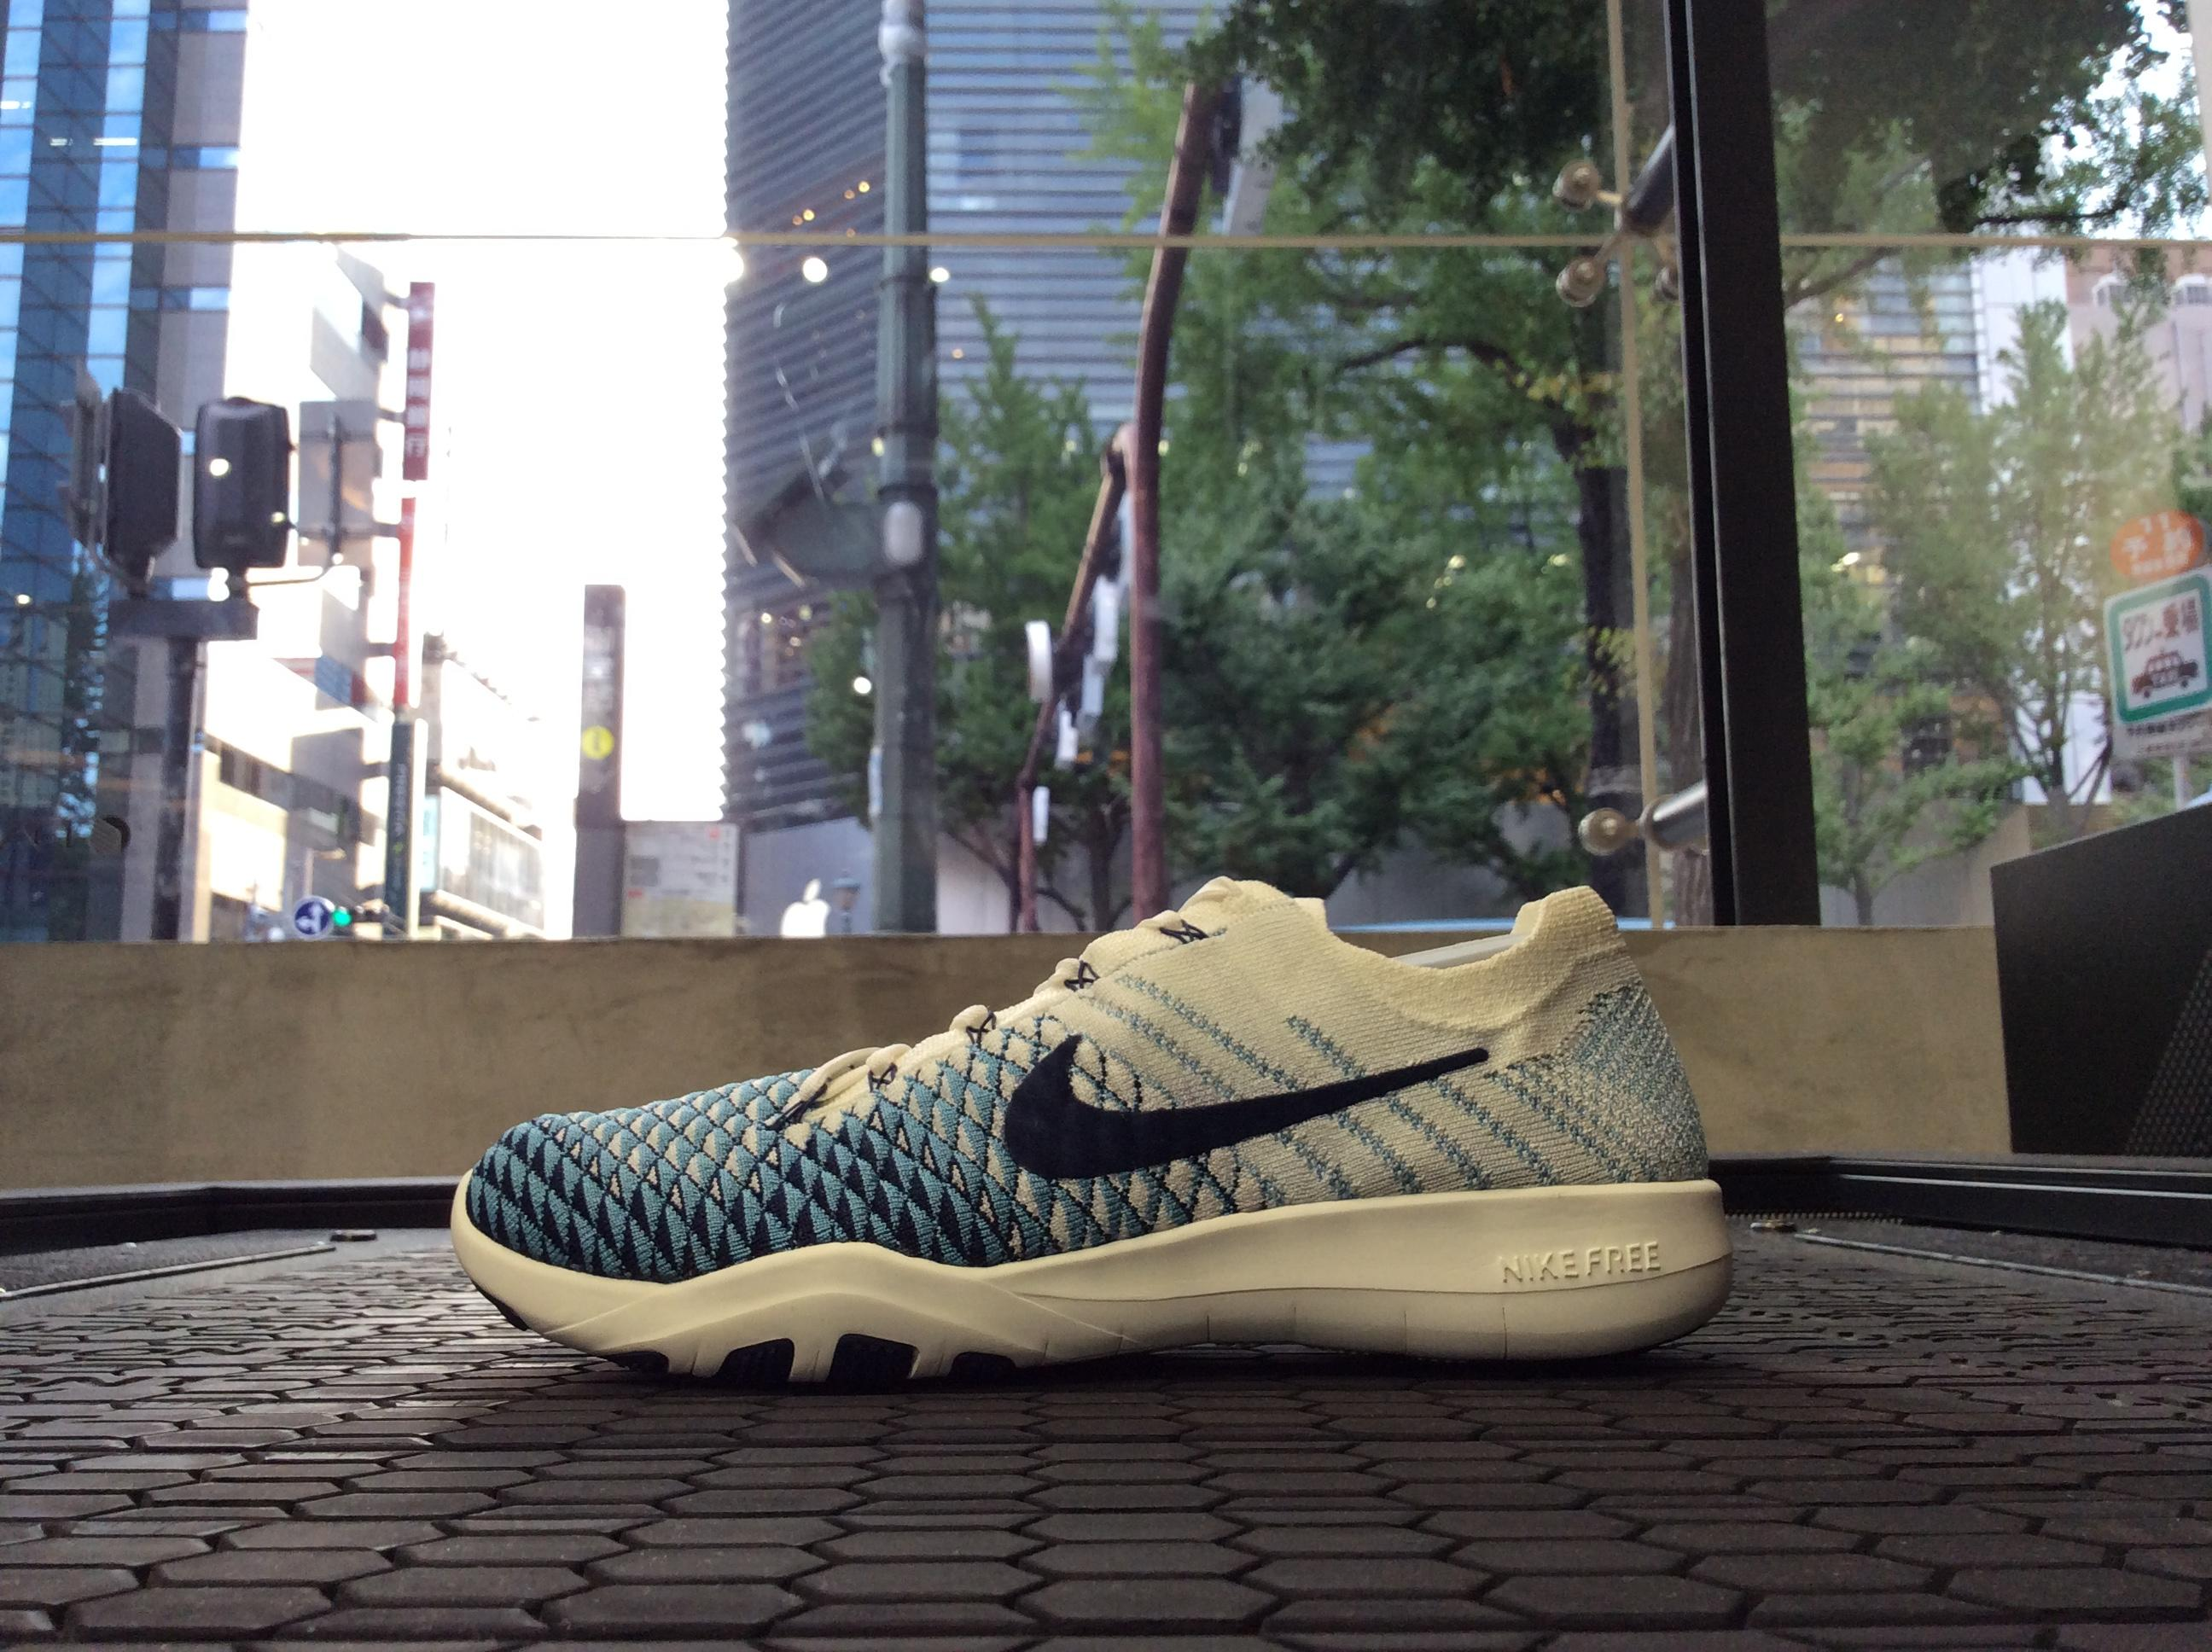 separation shoes db9af 8c83a WOMEN'S TRANNING INDIGO COLLECTION - NikeOsaka STORE BLOG